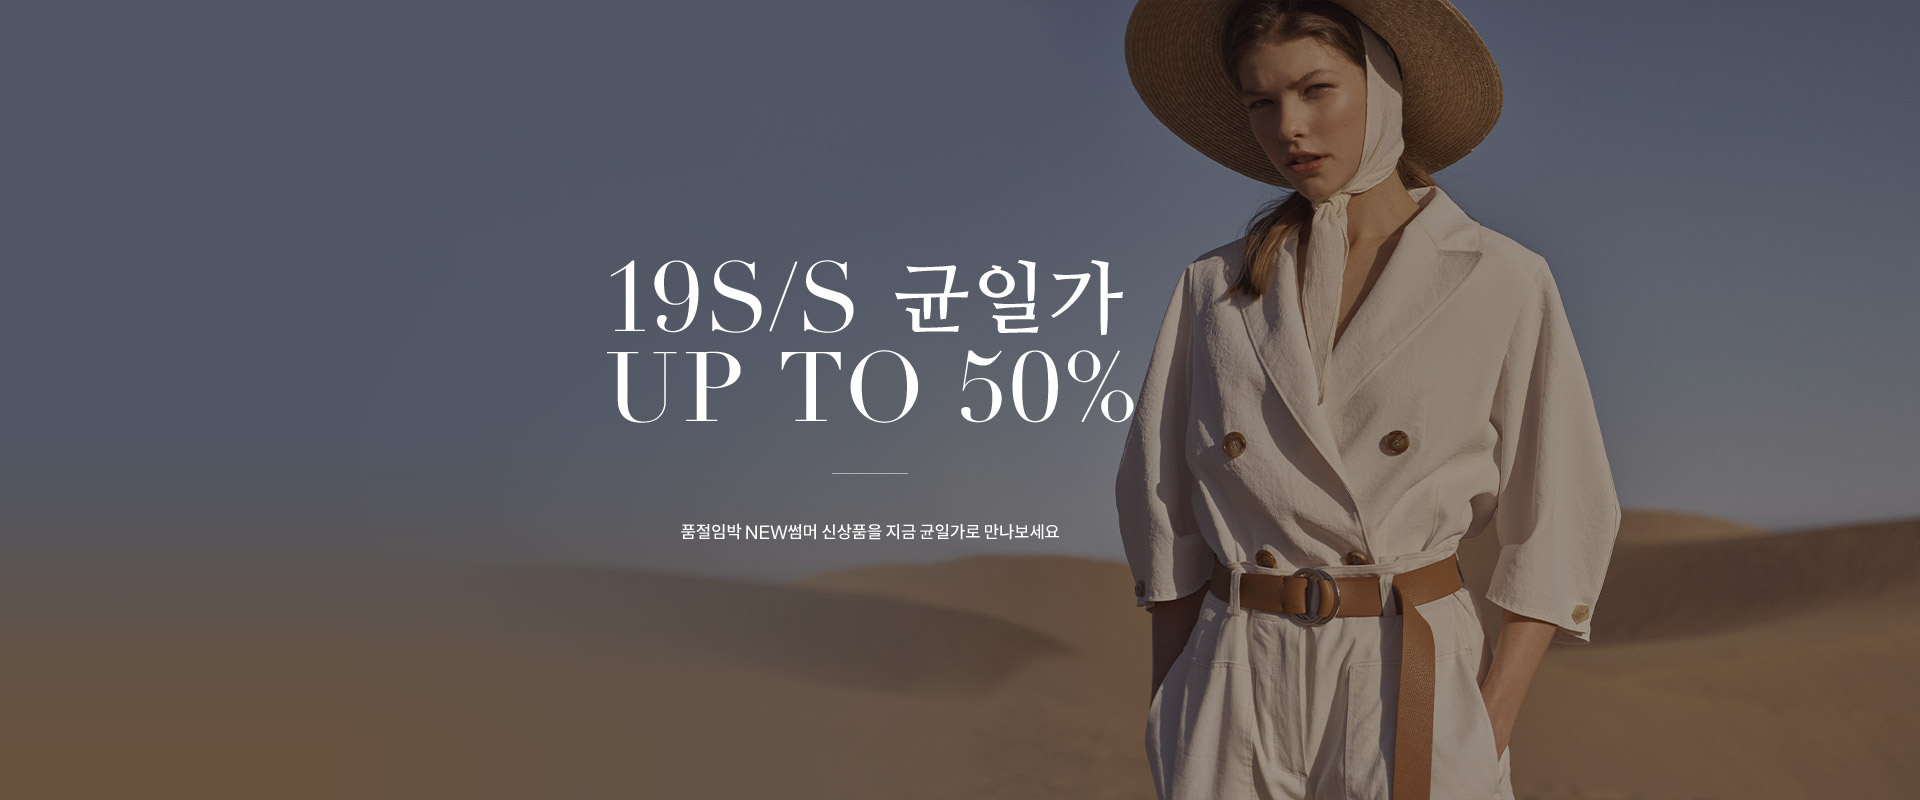 19 S/S 균일가 UP TO 50%